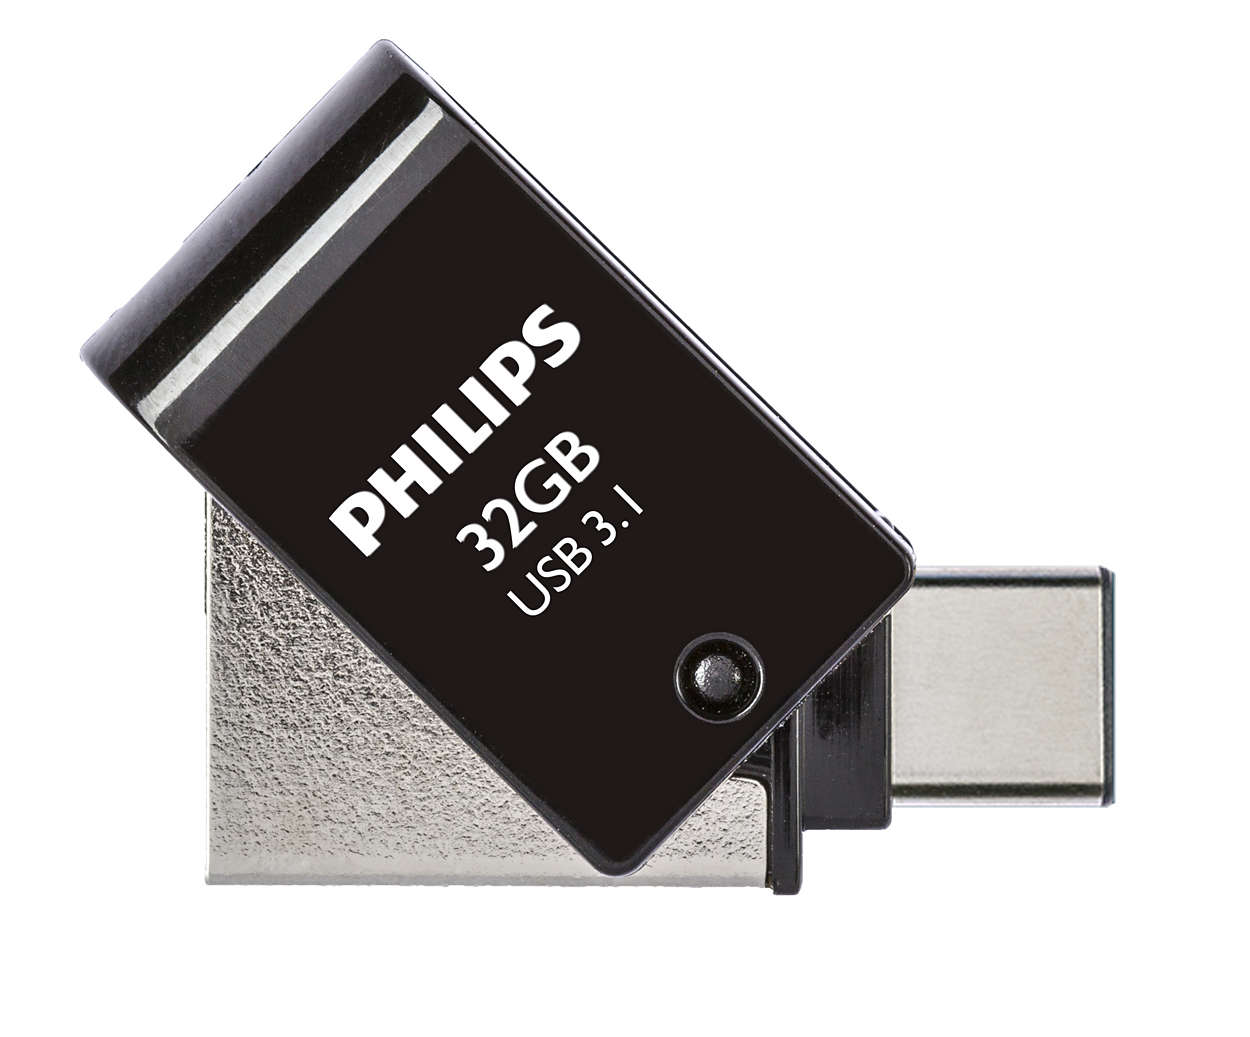 Easy to use, dual connectors